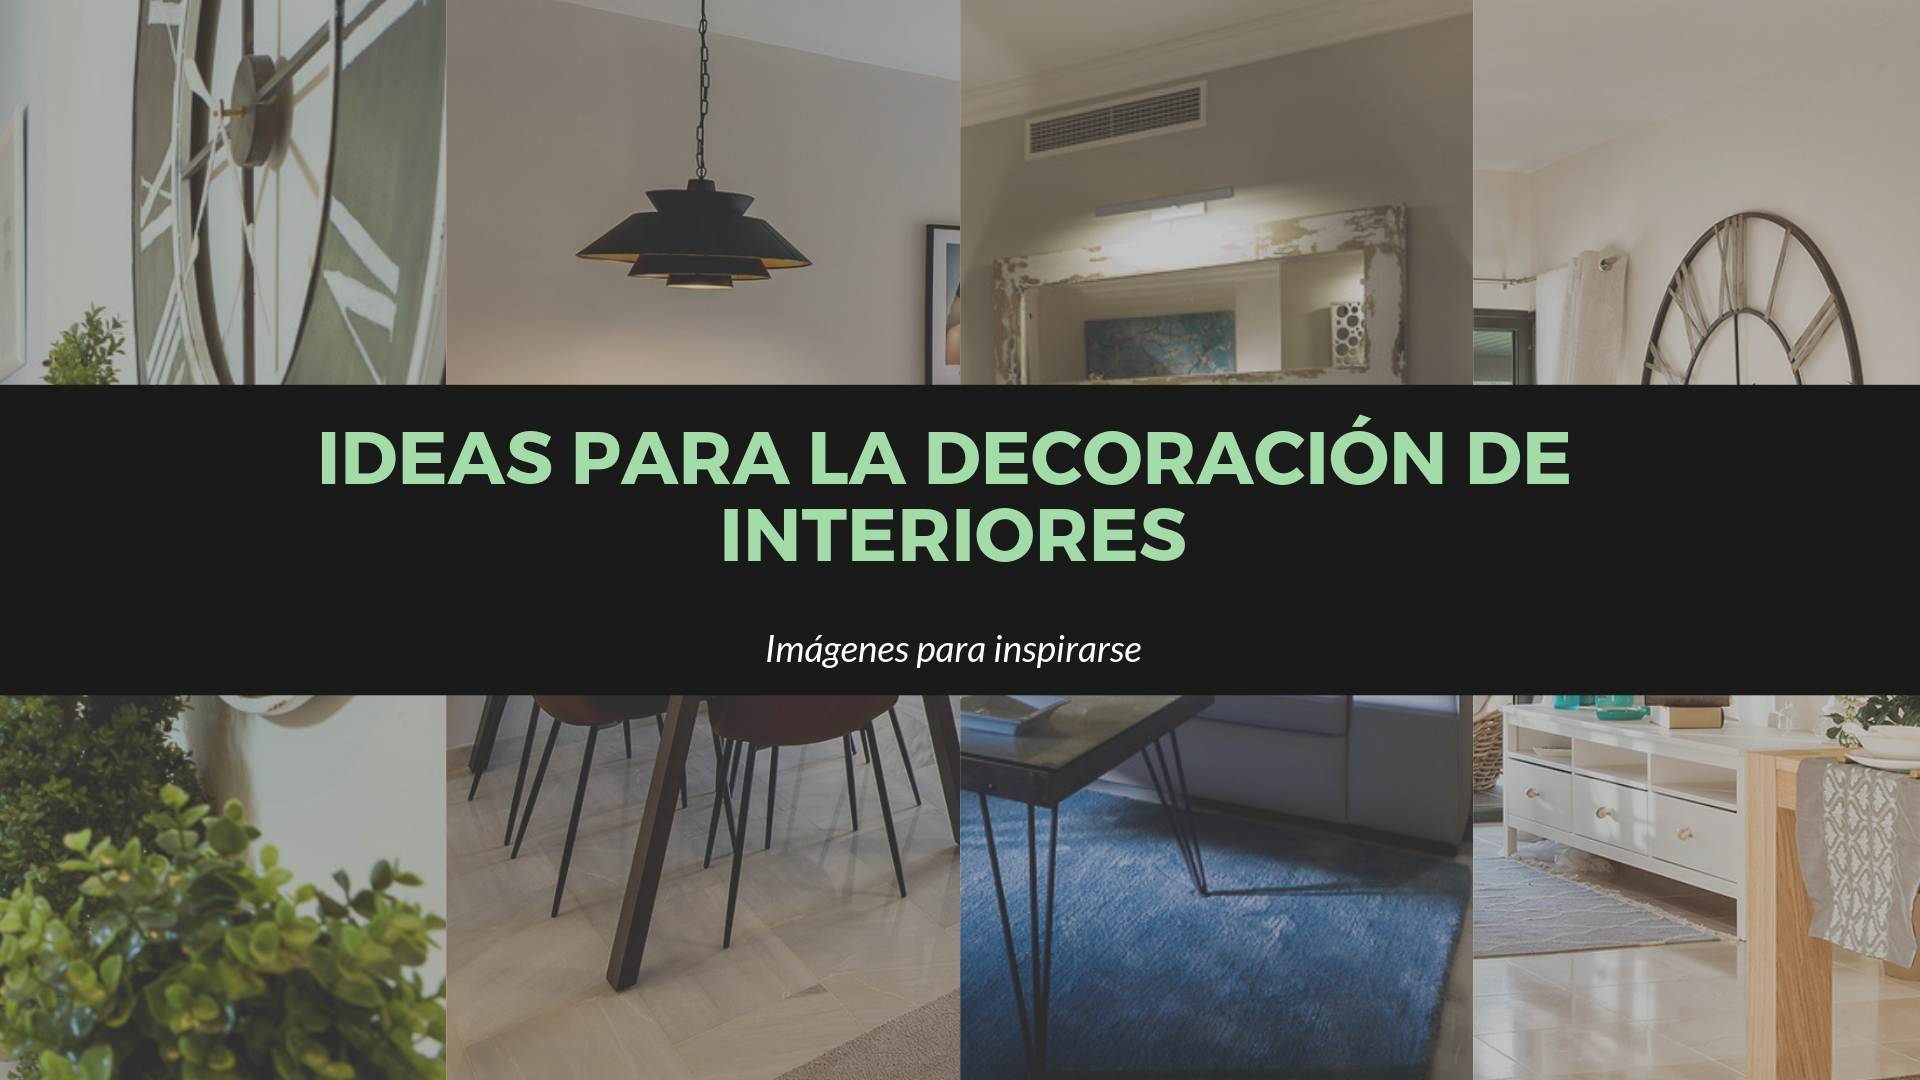 Ideas En Decoracion De Interiores Decoración De Interiores Obtén Ideas Con Estas Imágenes